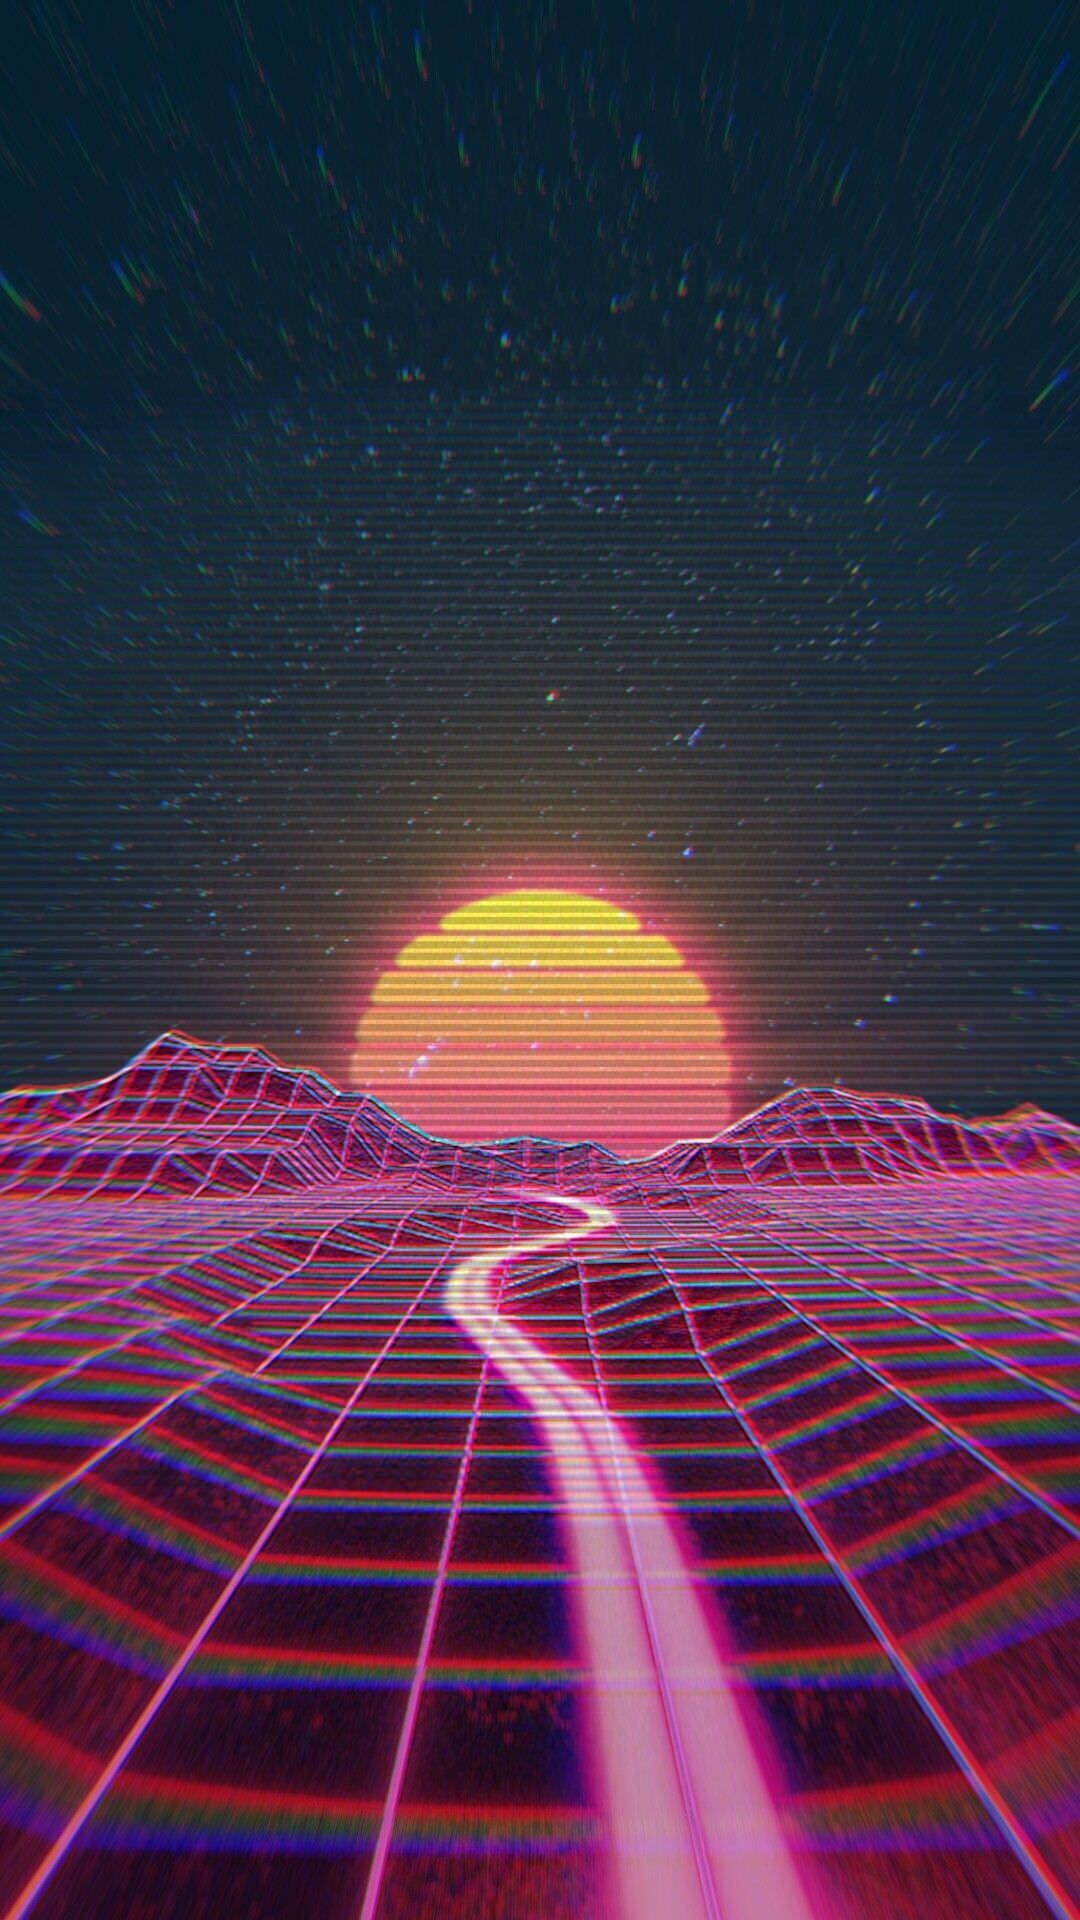 reddit the front page of the Vaporwave